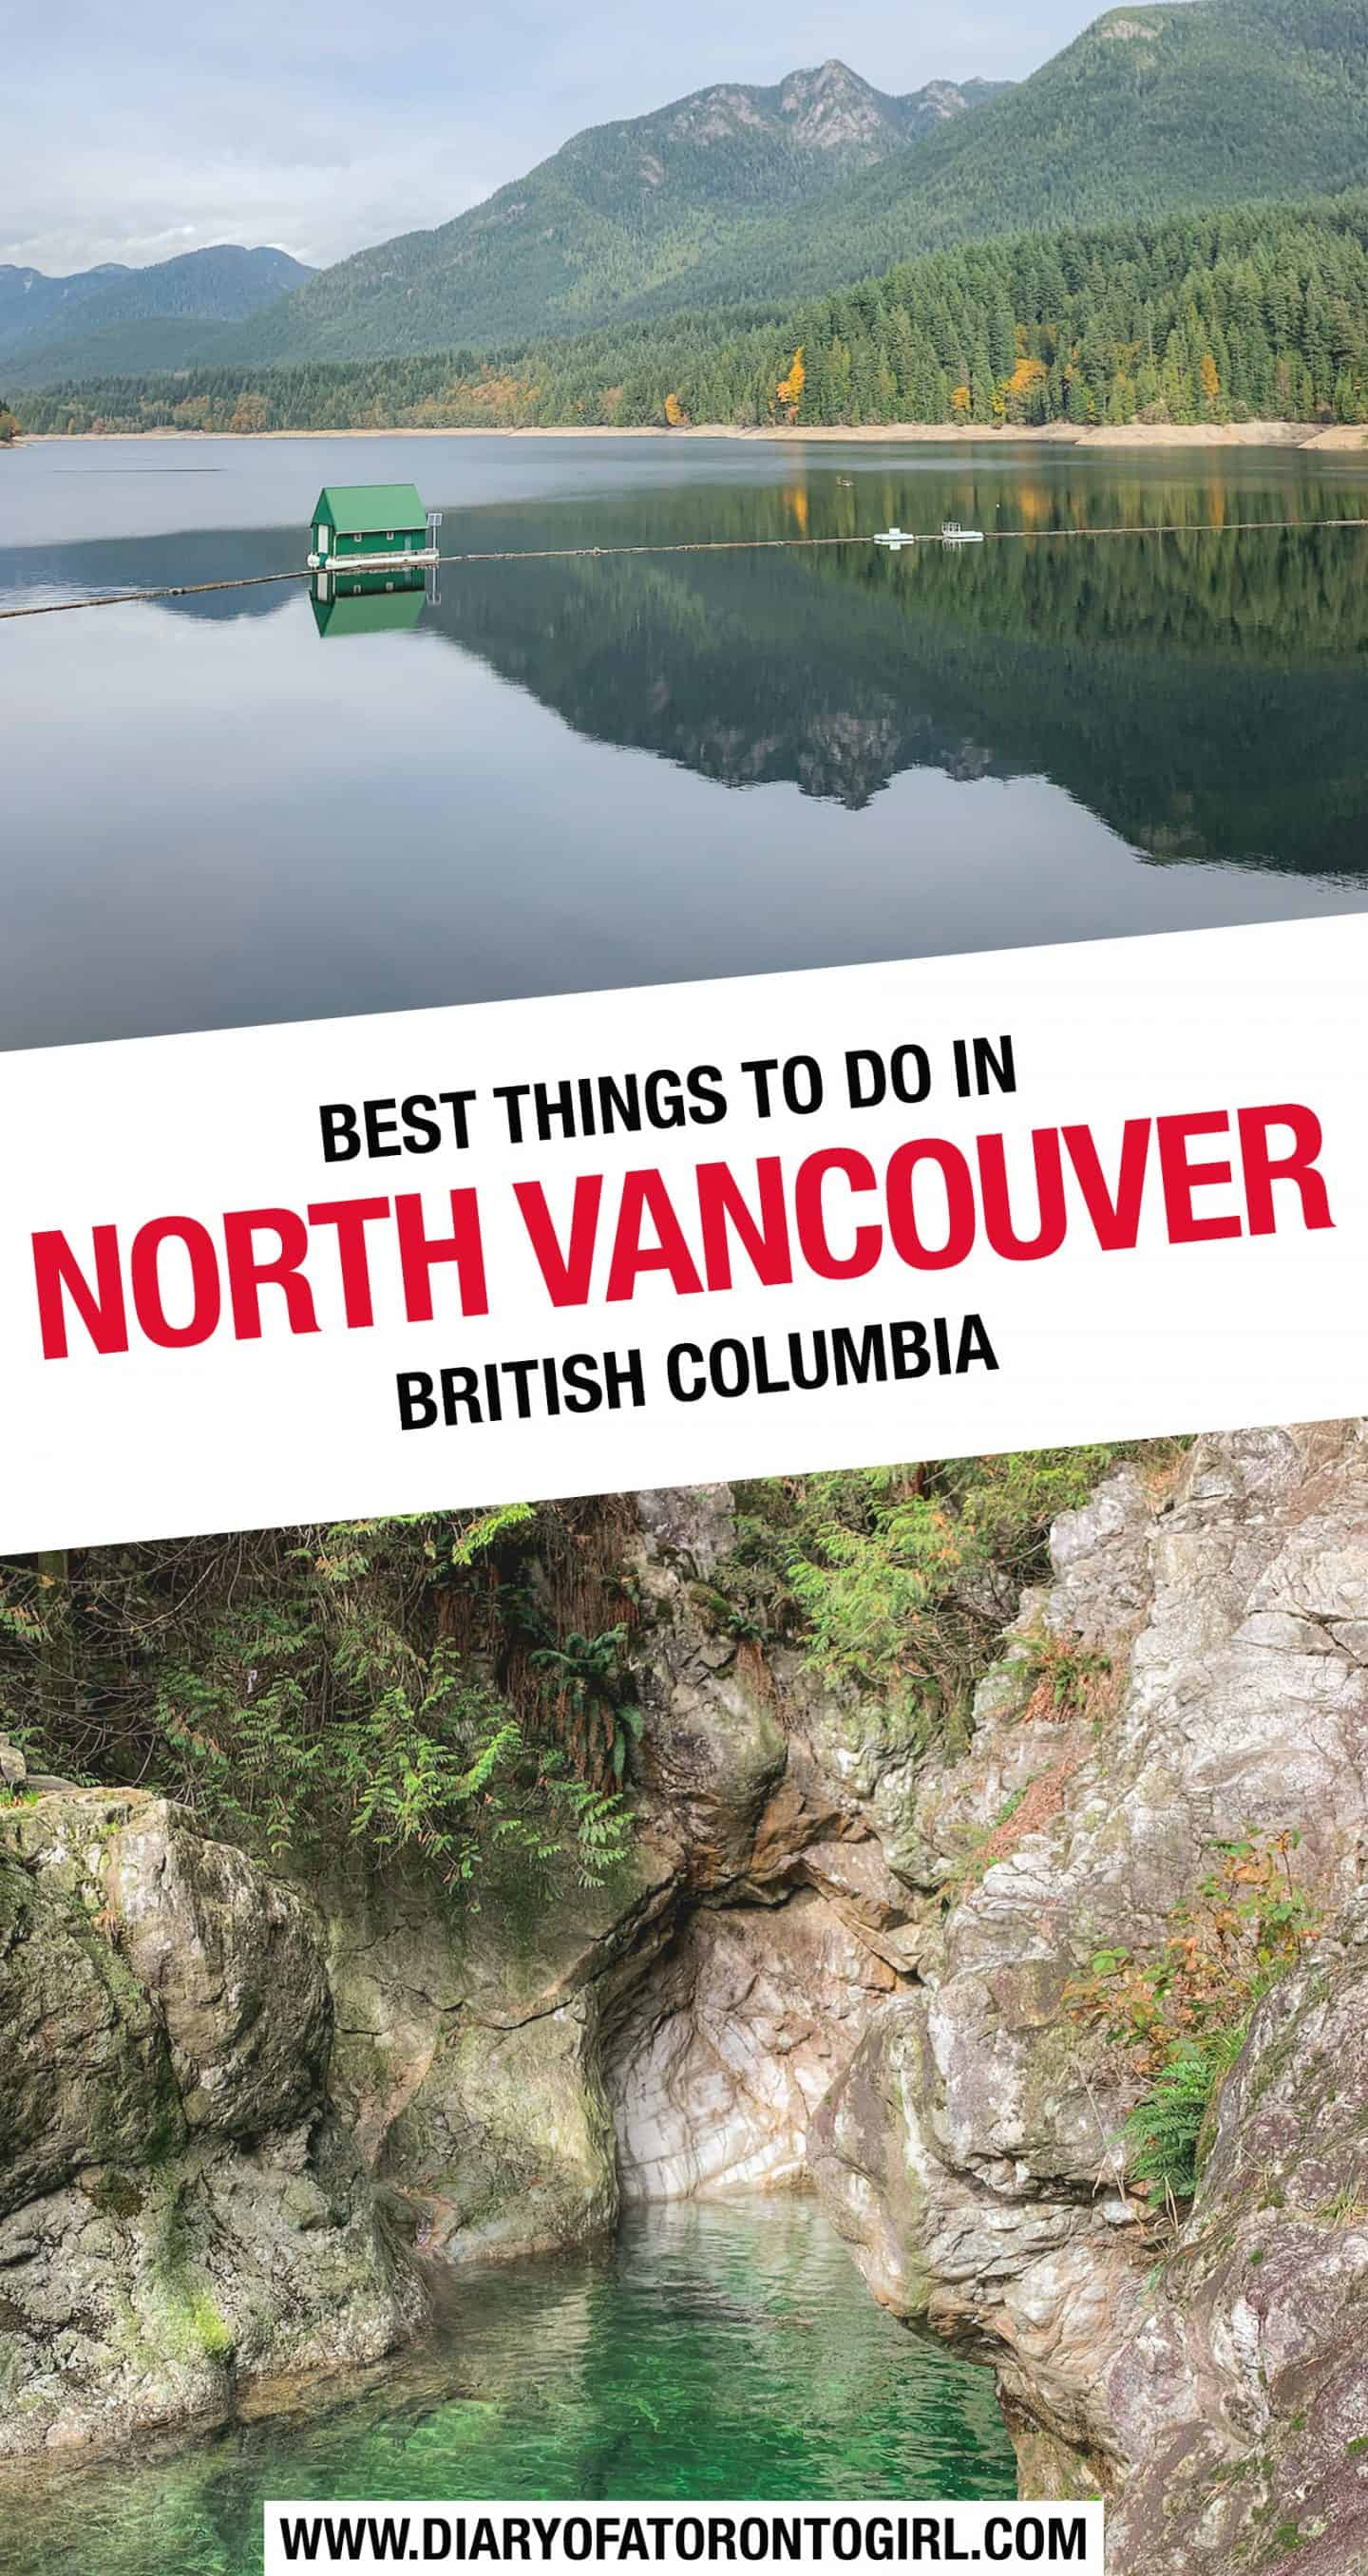 The best and most fun things to do in North Vancouver, British Columbia, including the perfect one day itinerary for exploring the neighbourhood!